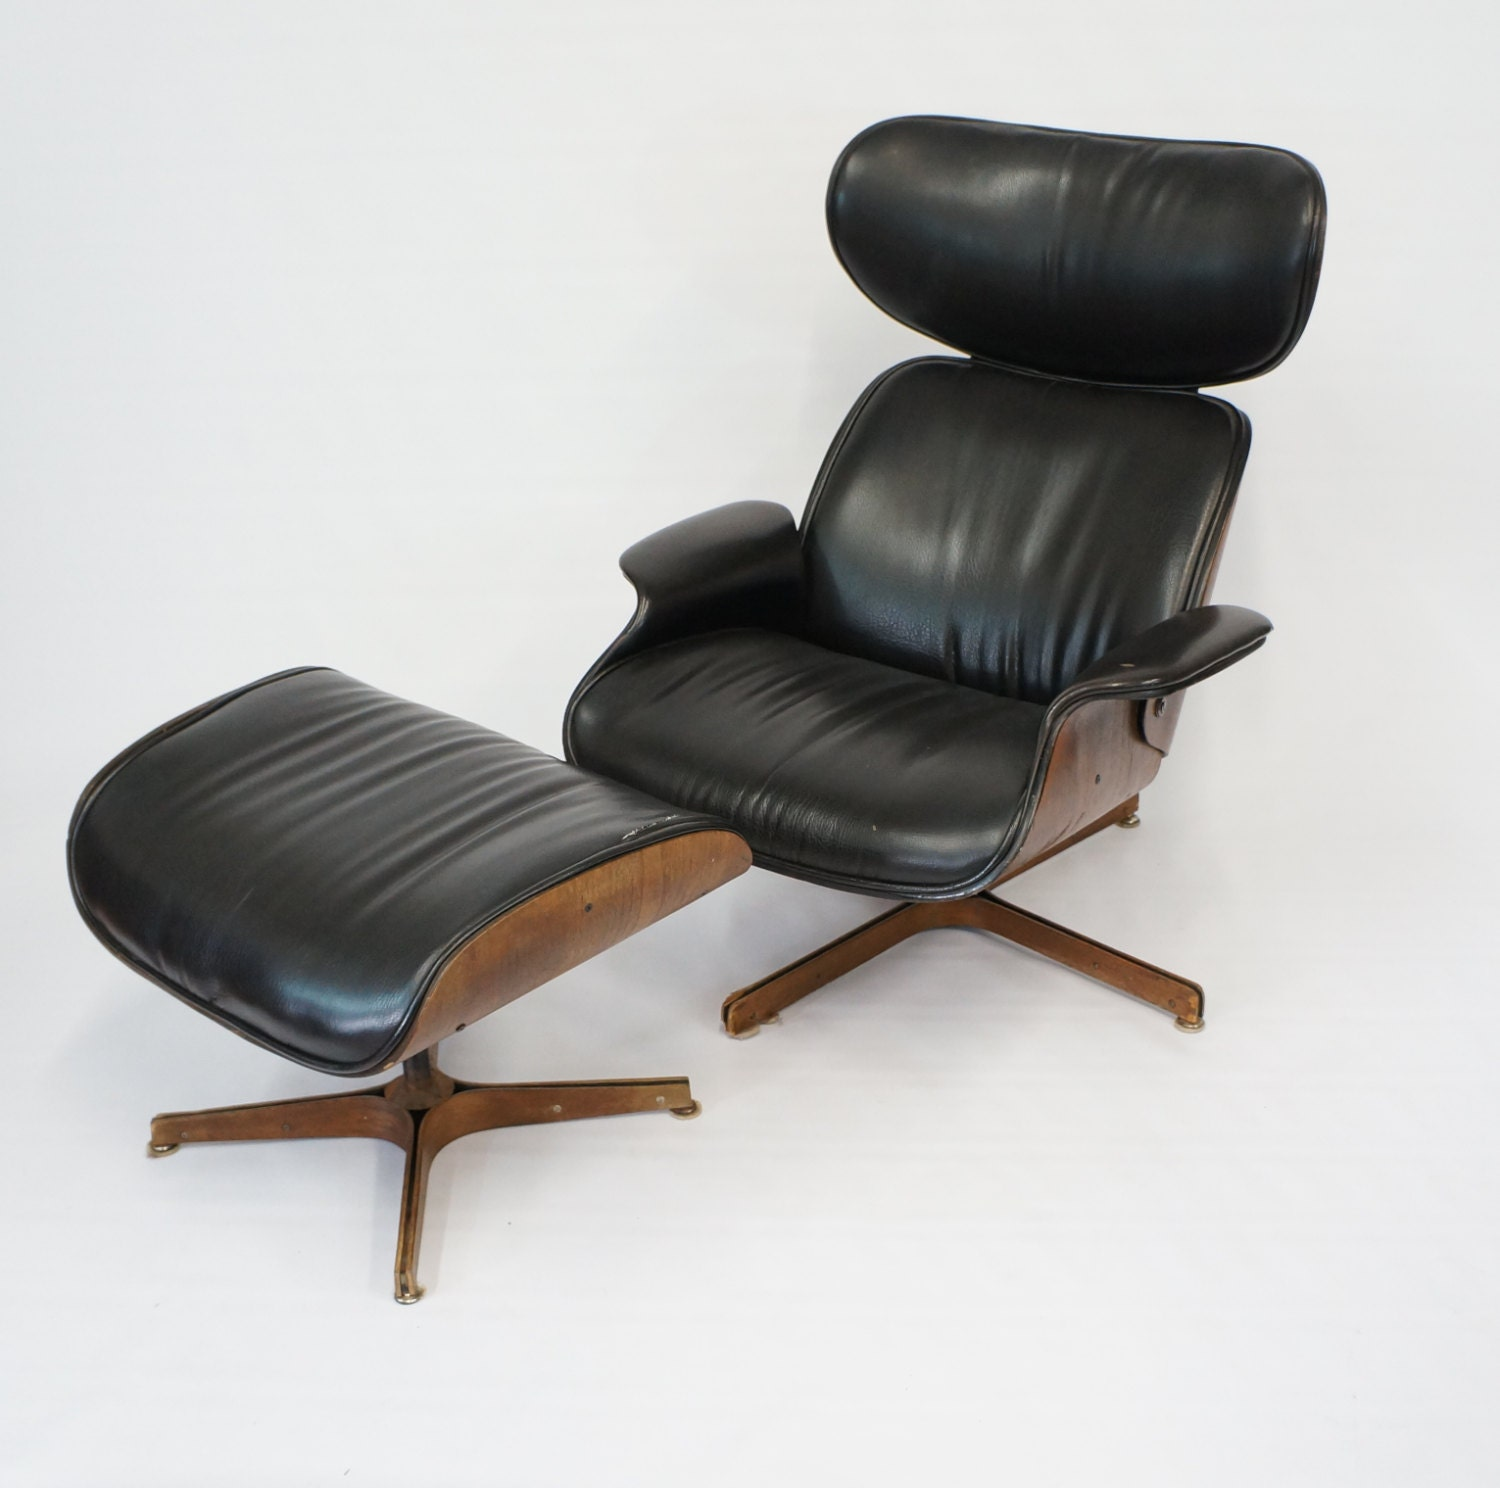 Mid Century Modern Plycraft lounge Mr Chair with by Gredesign